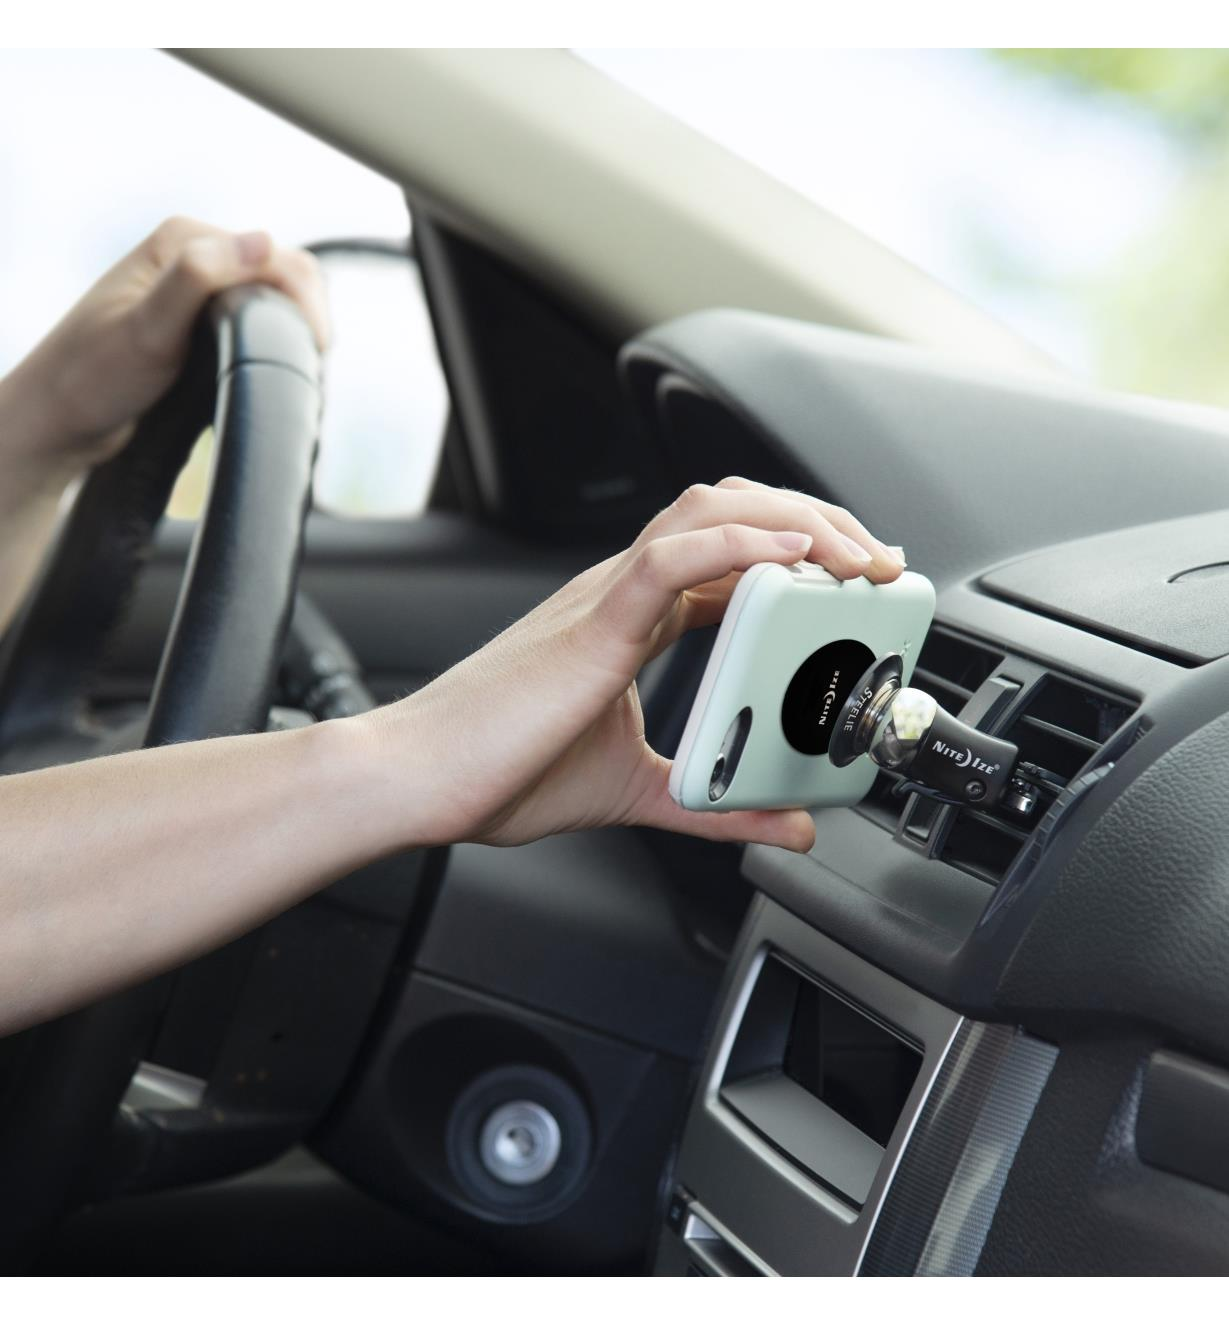 Attaching a cell phone to the vent-mount kit installed in a car vent